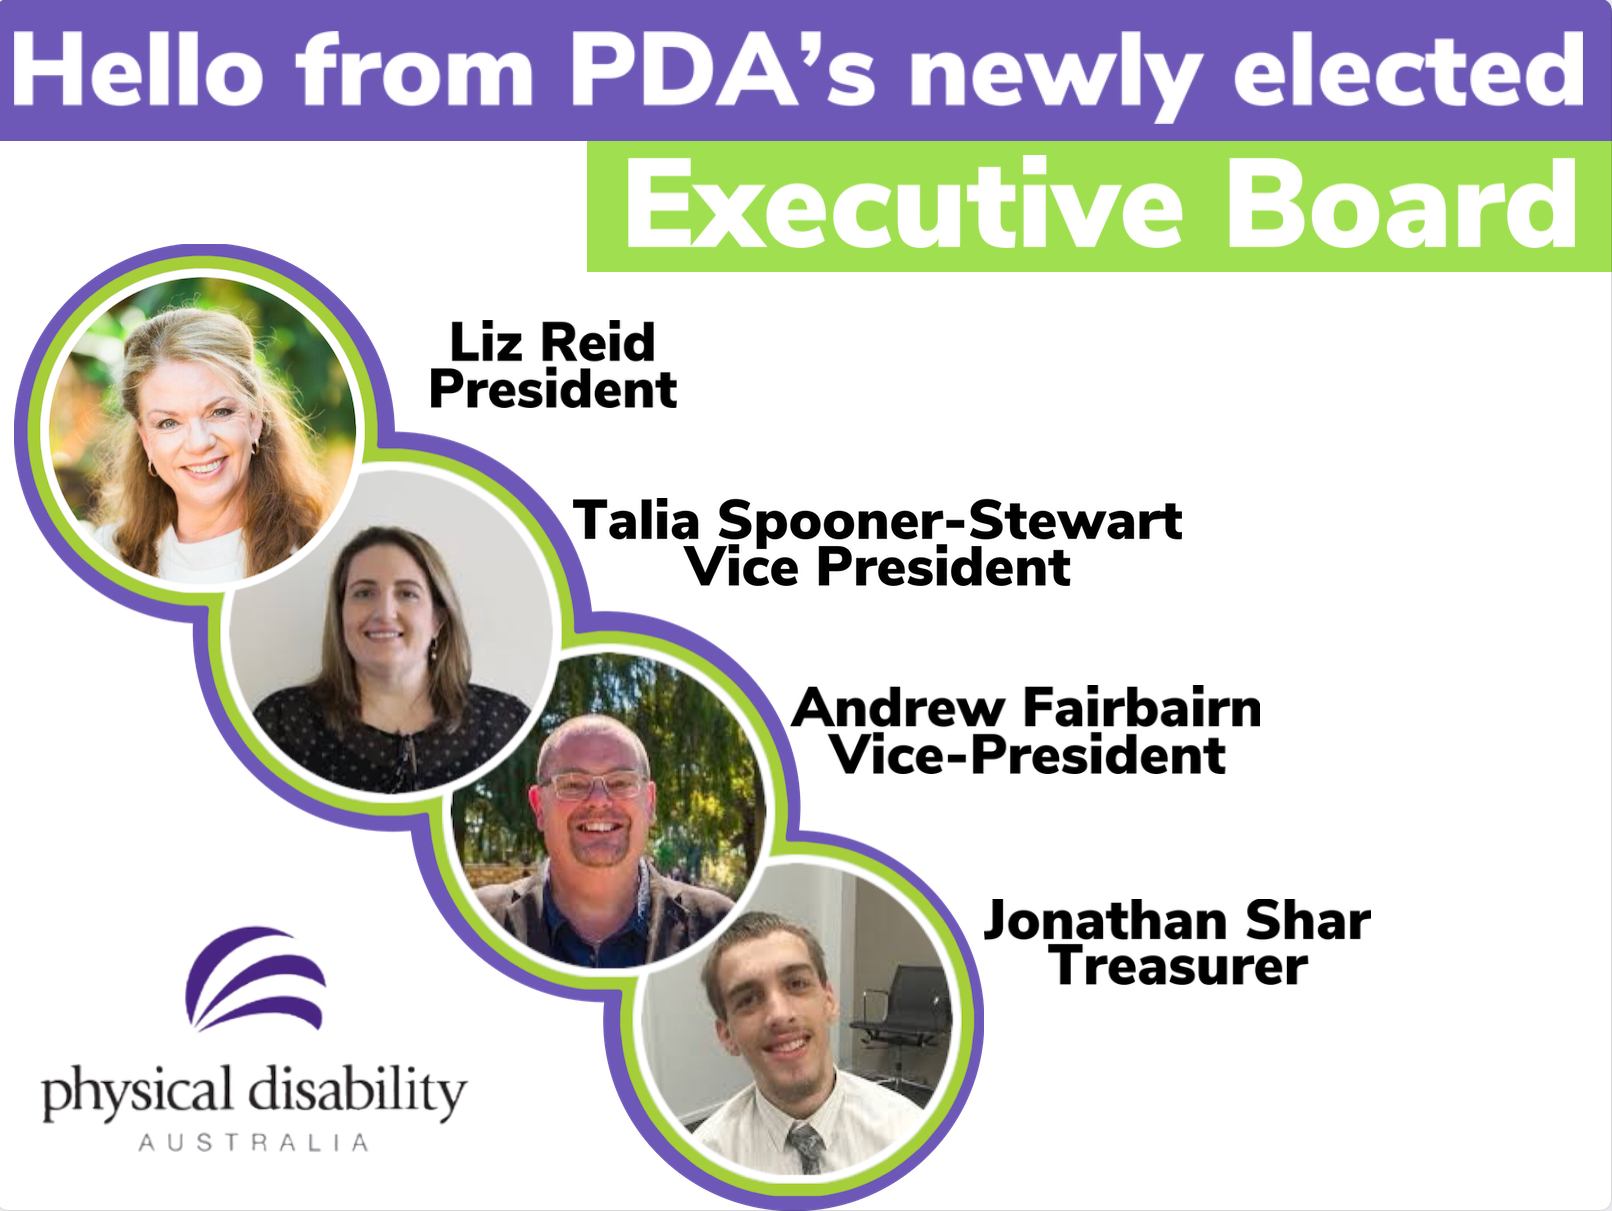 Announcing PDA's newly elected Executive Board